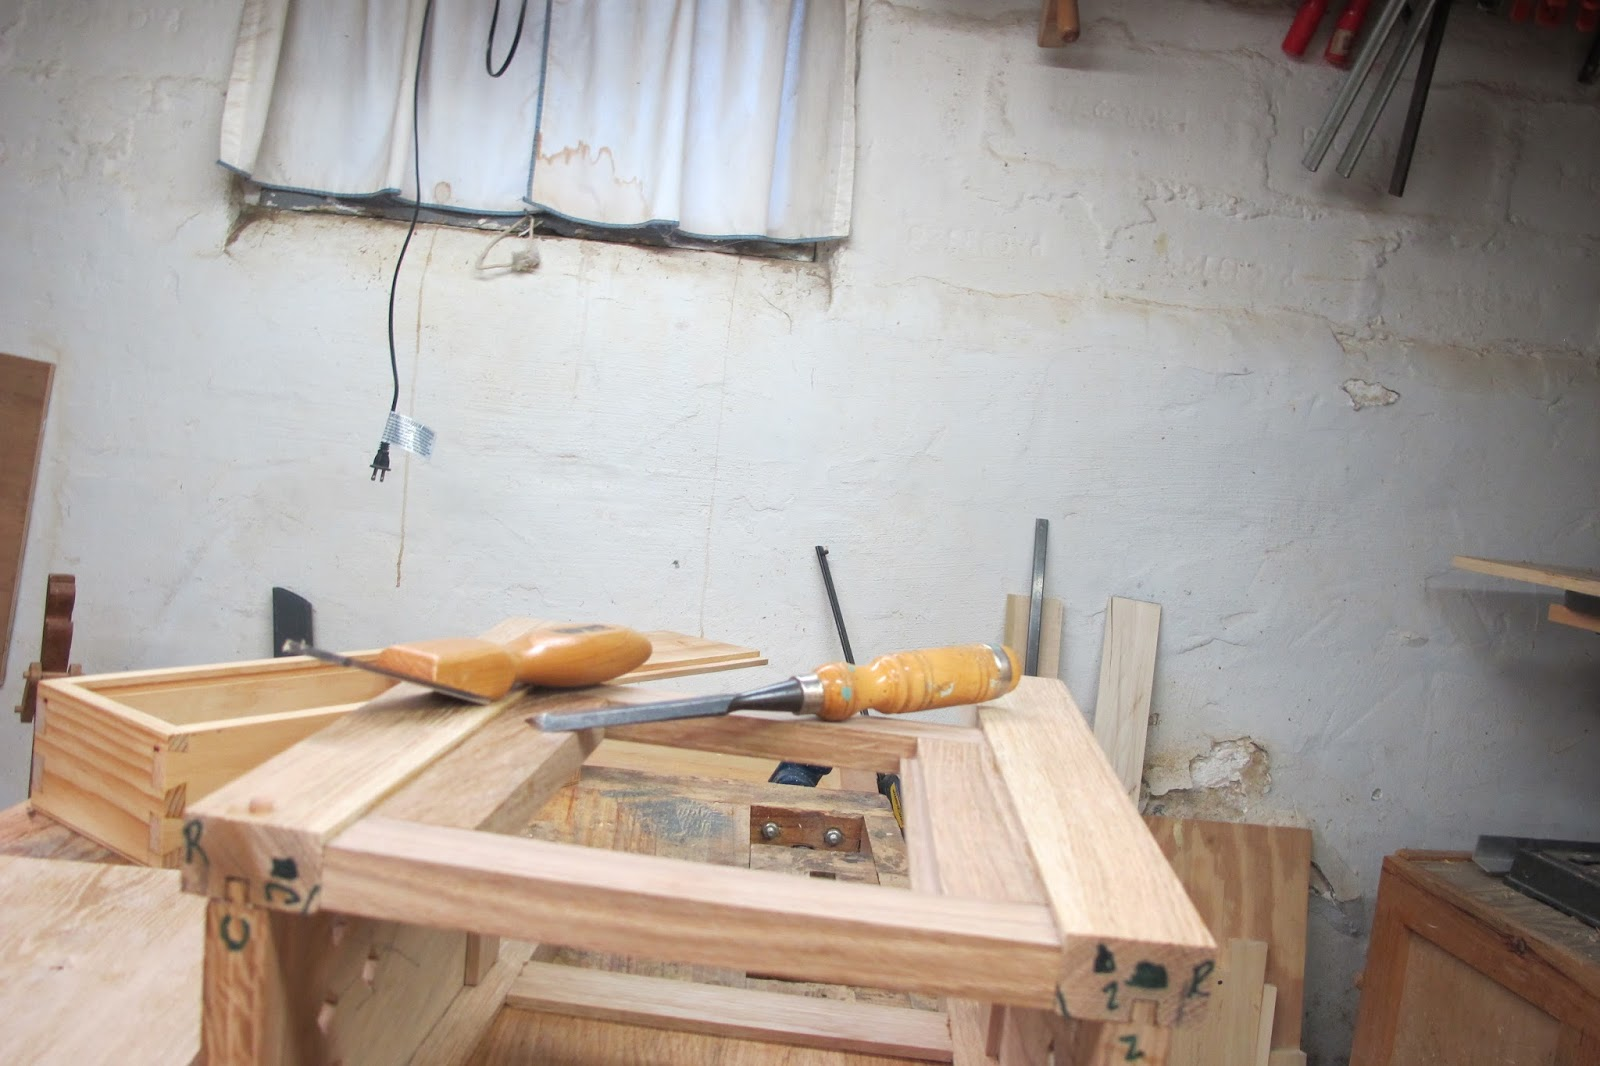 Best Woodworking Plans Website: Plans to Making Rotating ...